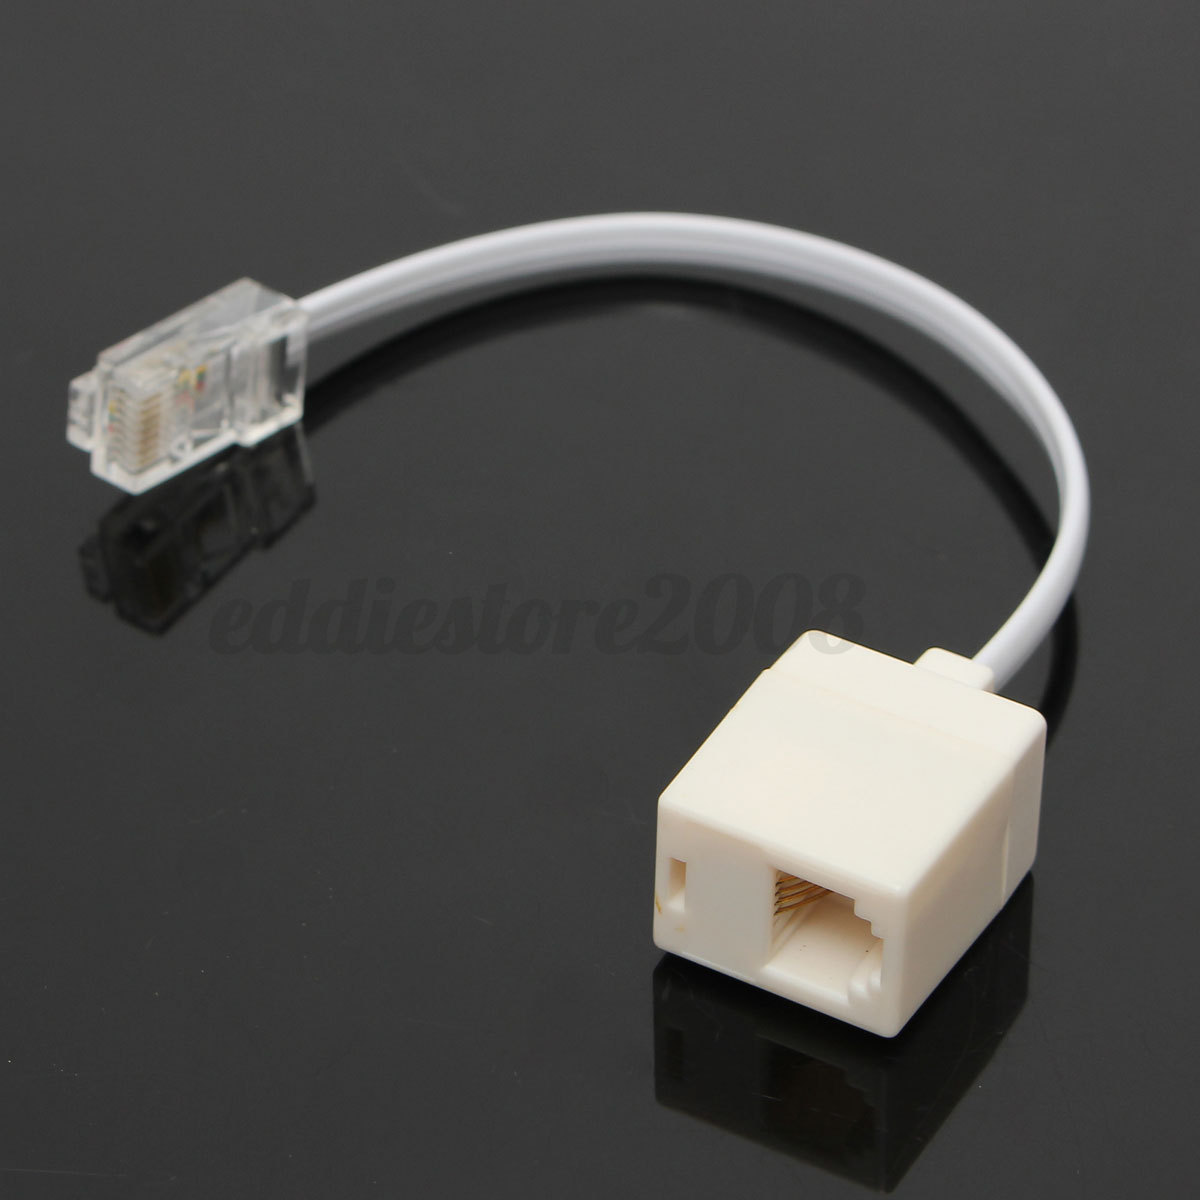 rj45 to rj11 adapter wiring diagram ado piso wifi 6p4c female ethernet 8p8c male f m